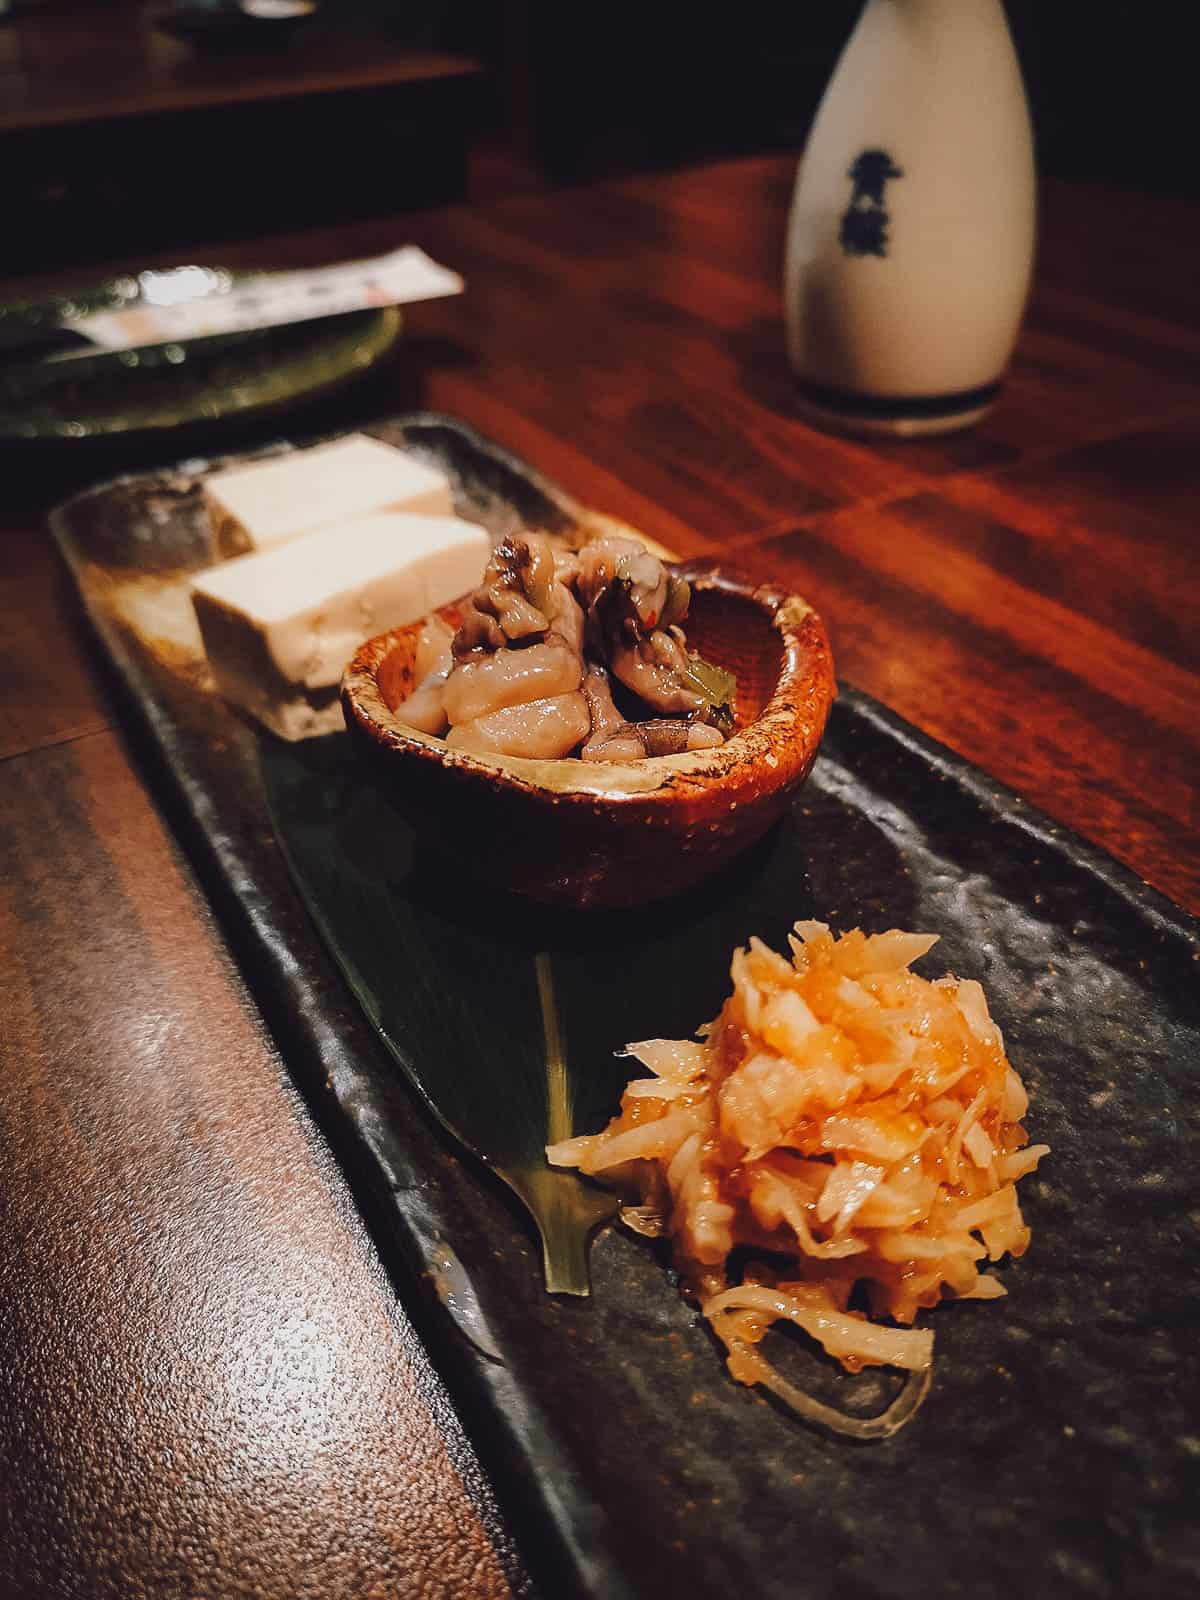 Trip of Japanese dishes